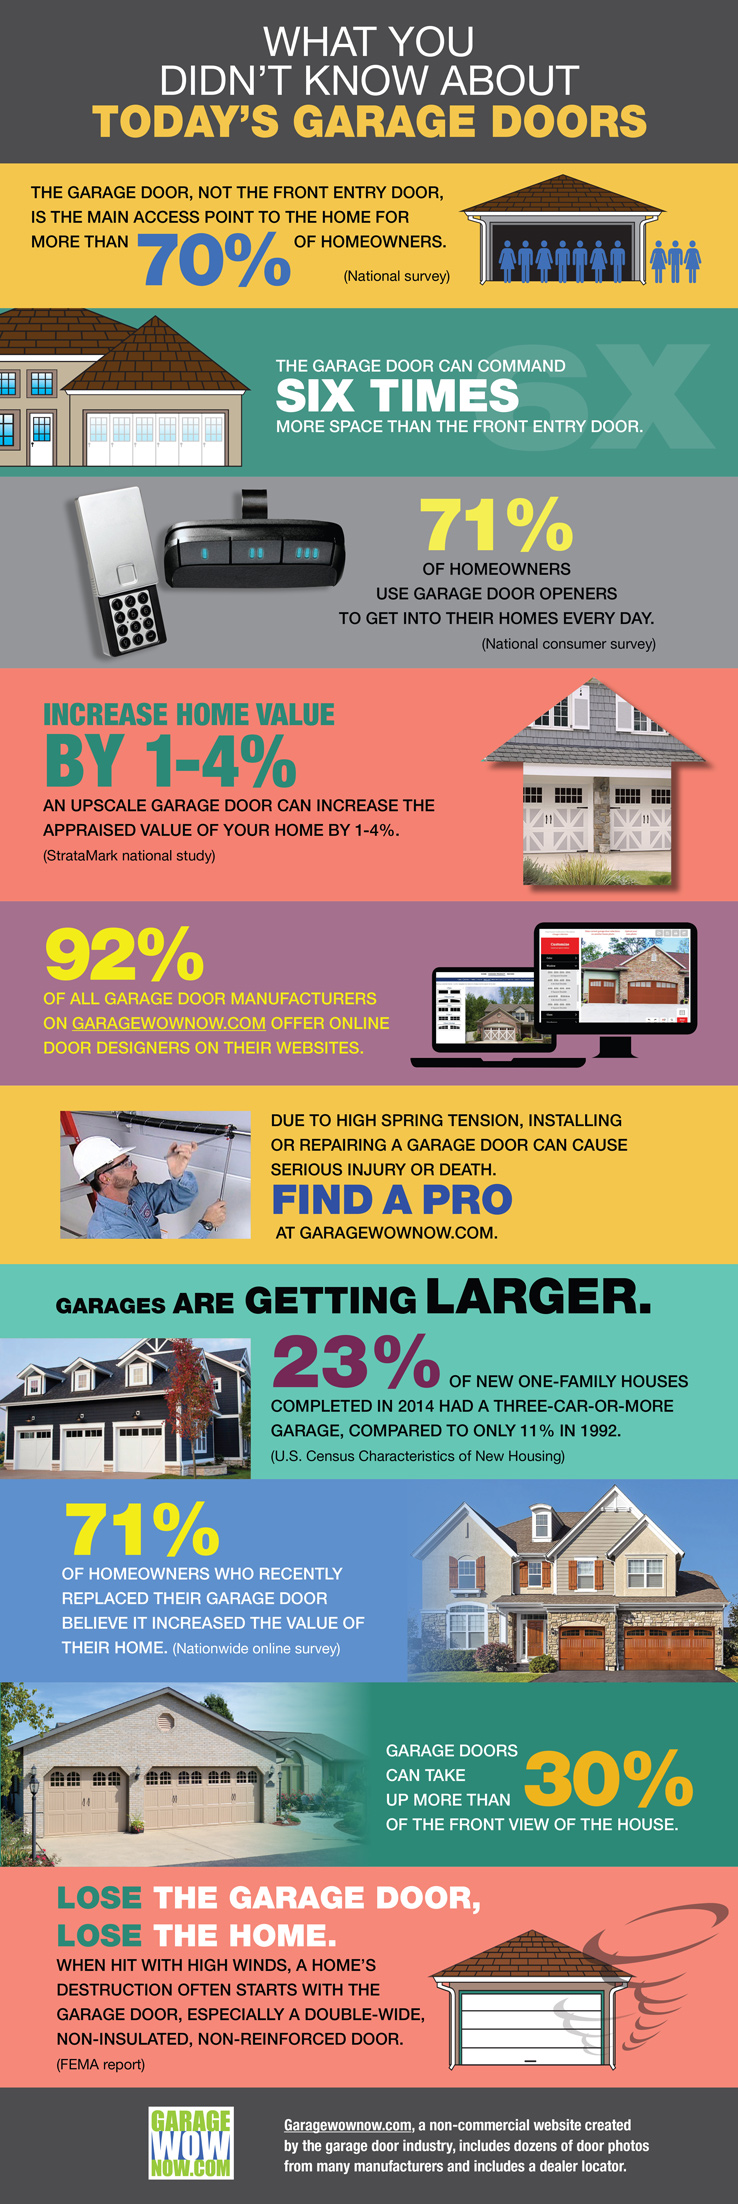 What you didn't know about today's garage doors - infographic